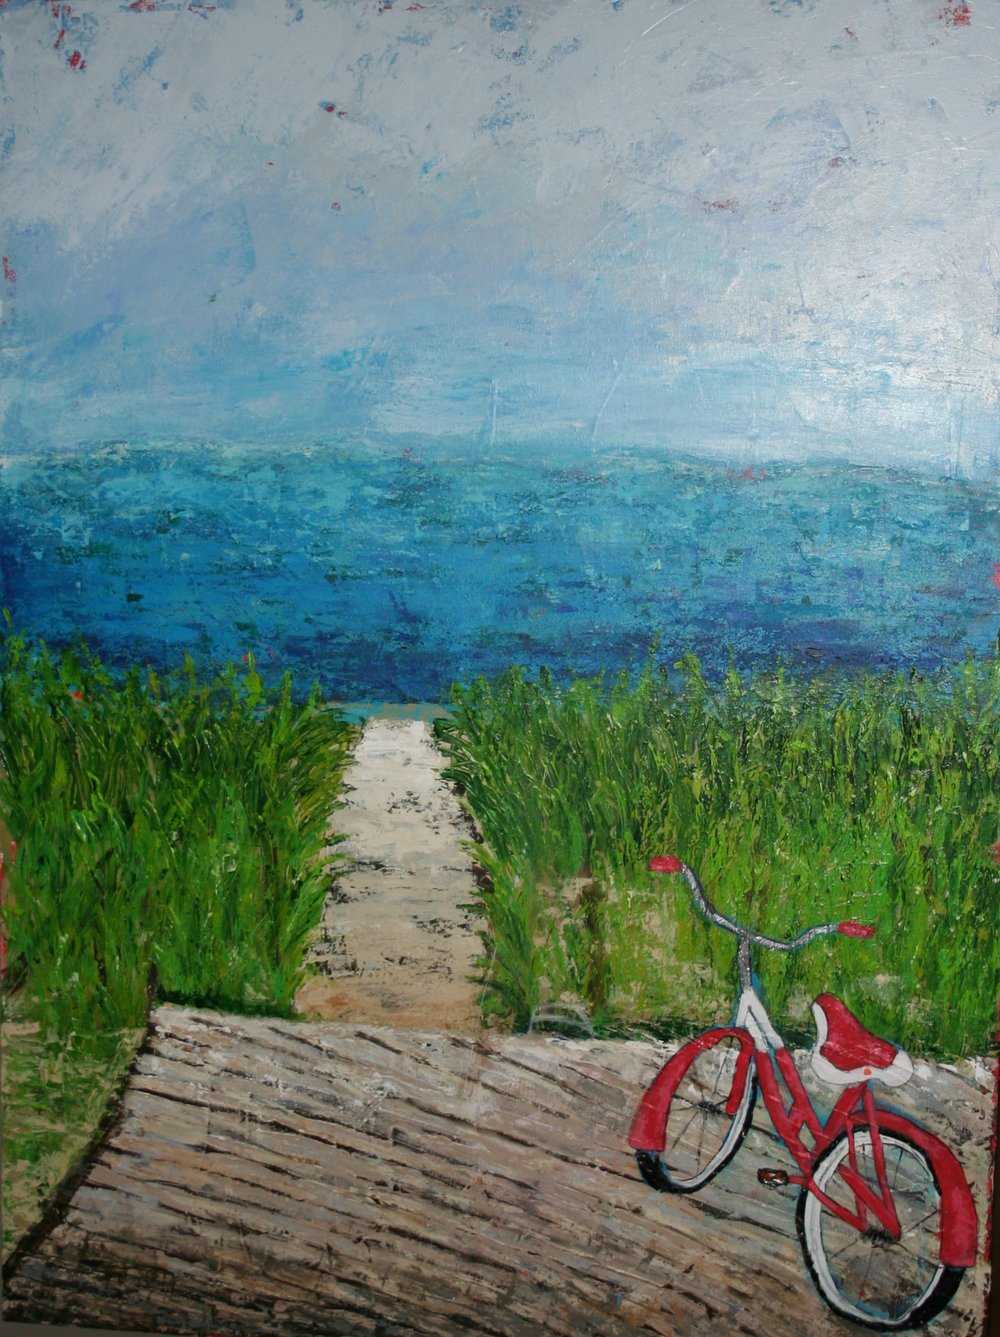 First Day of Summer - 30x40 acrylic on canvas - available